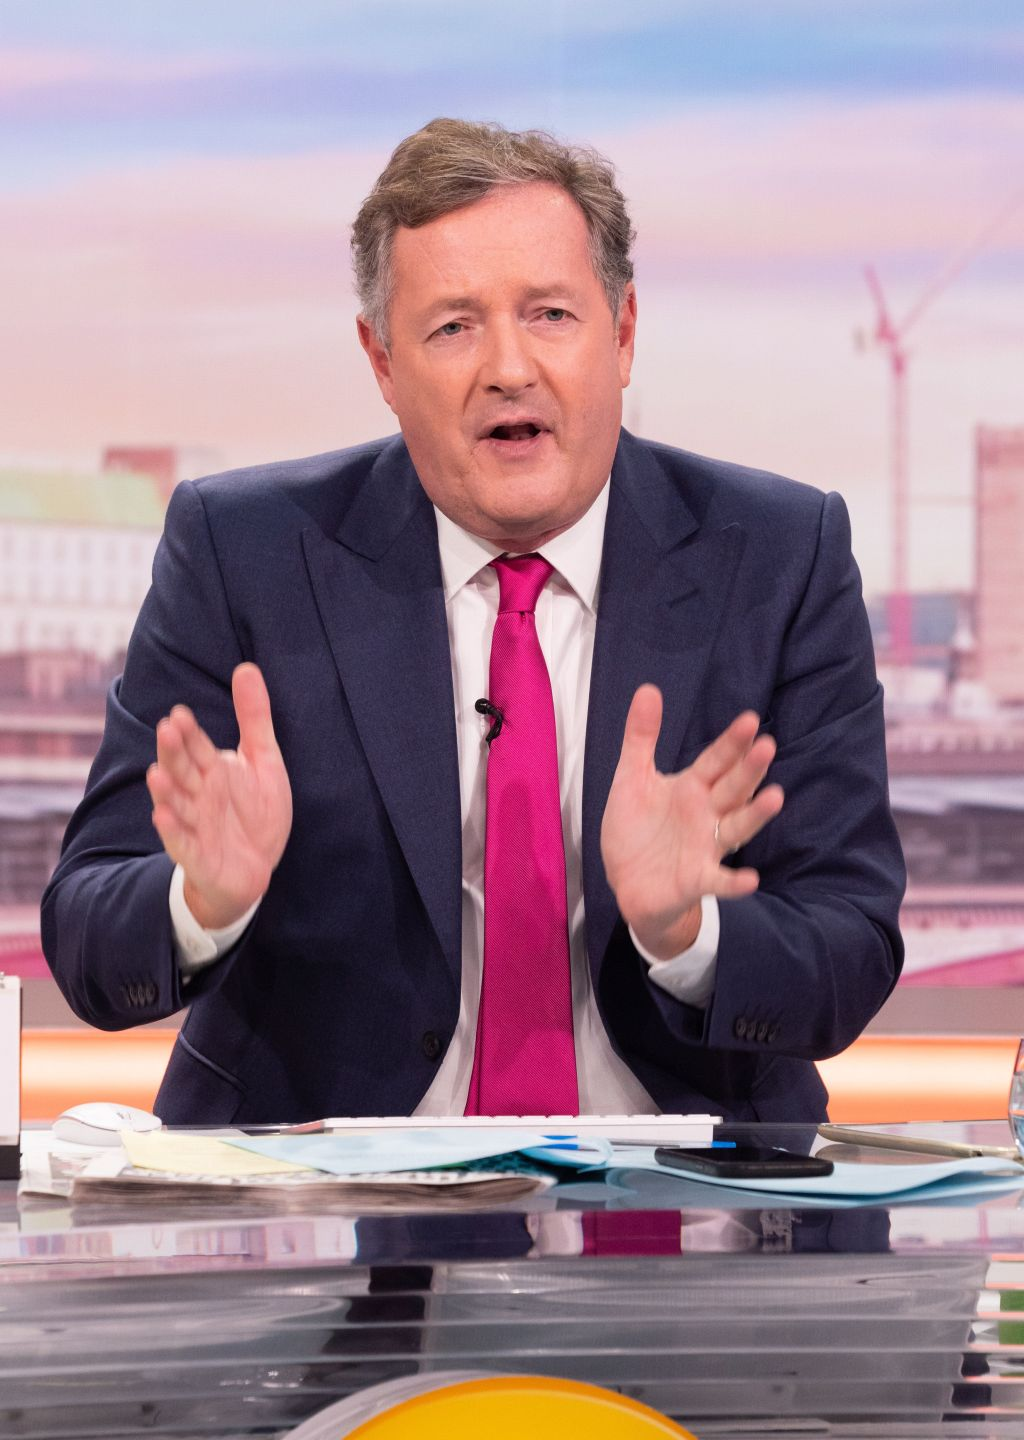 Piers Morgan Urges People To Be 'Realistic' About Spending Christmas Under Coronavirus Restrictions